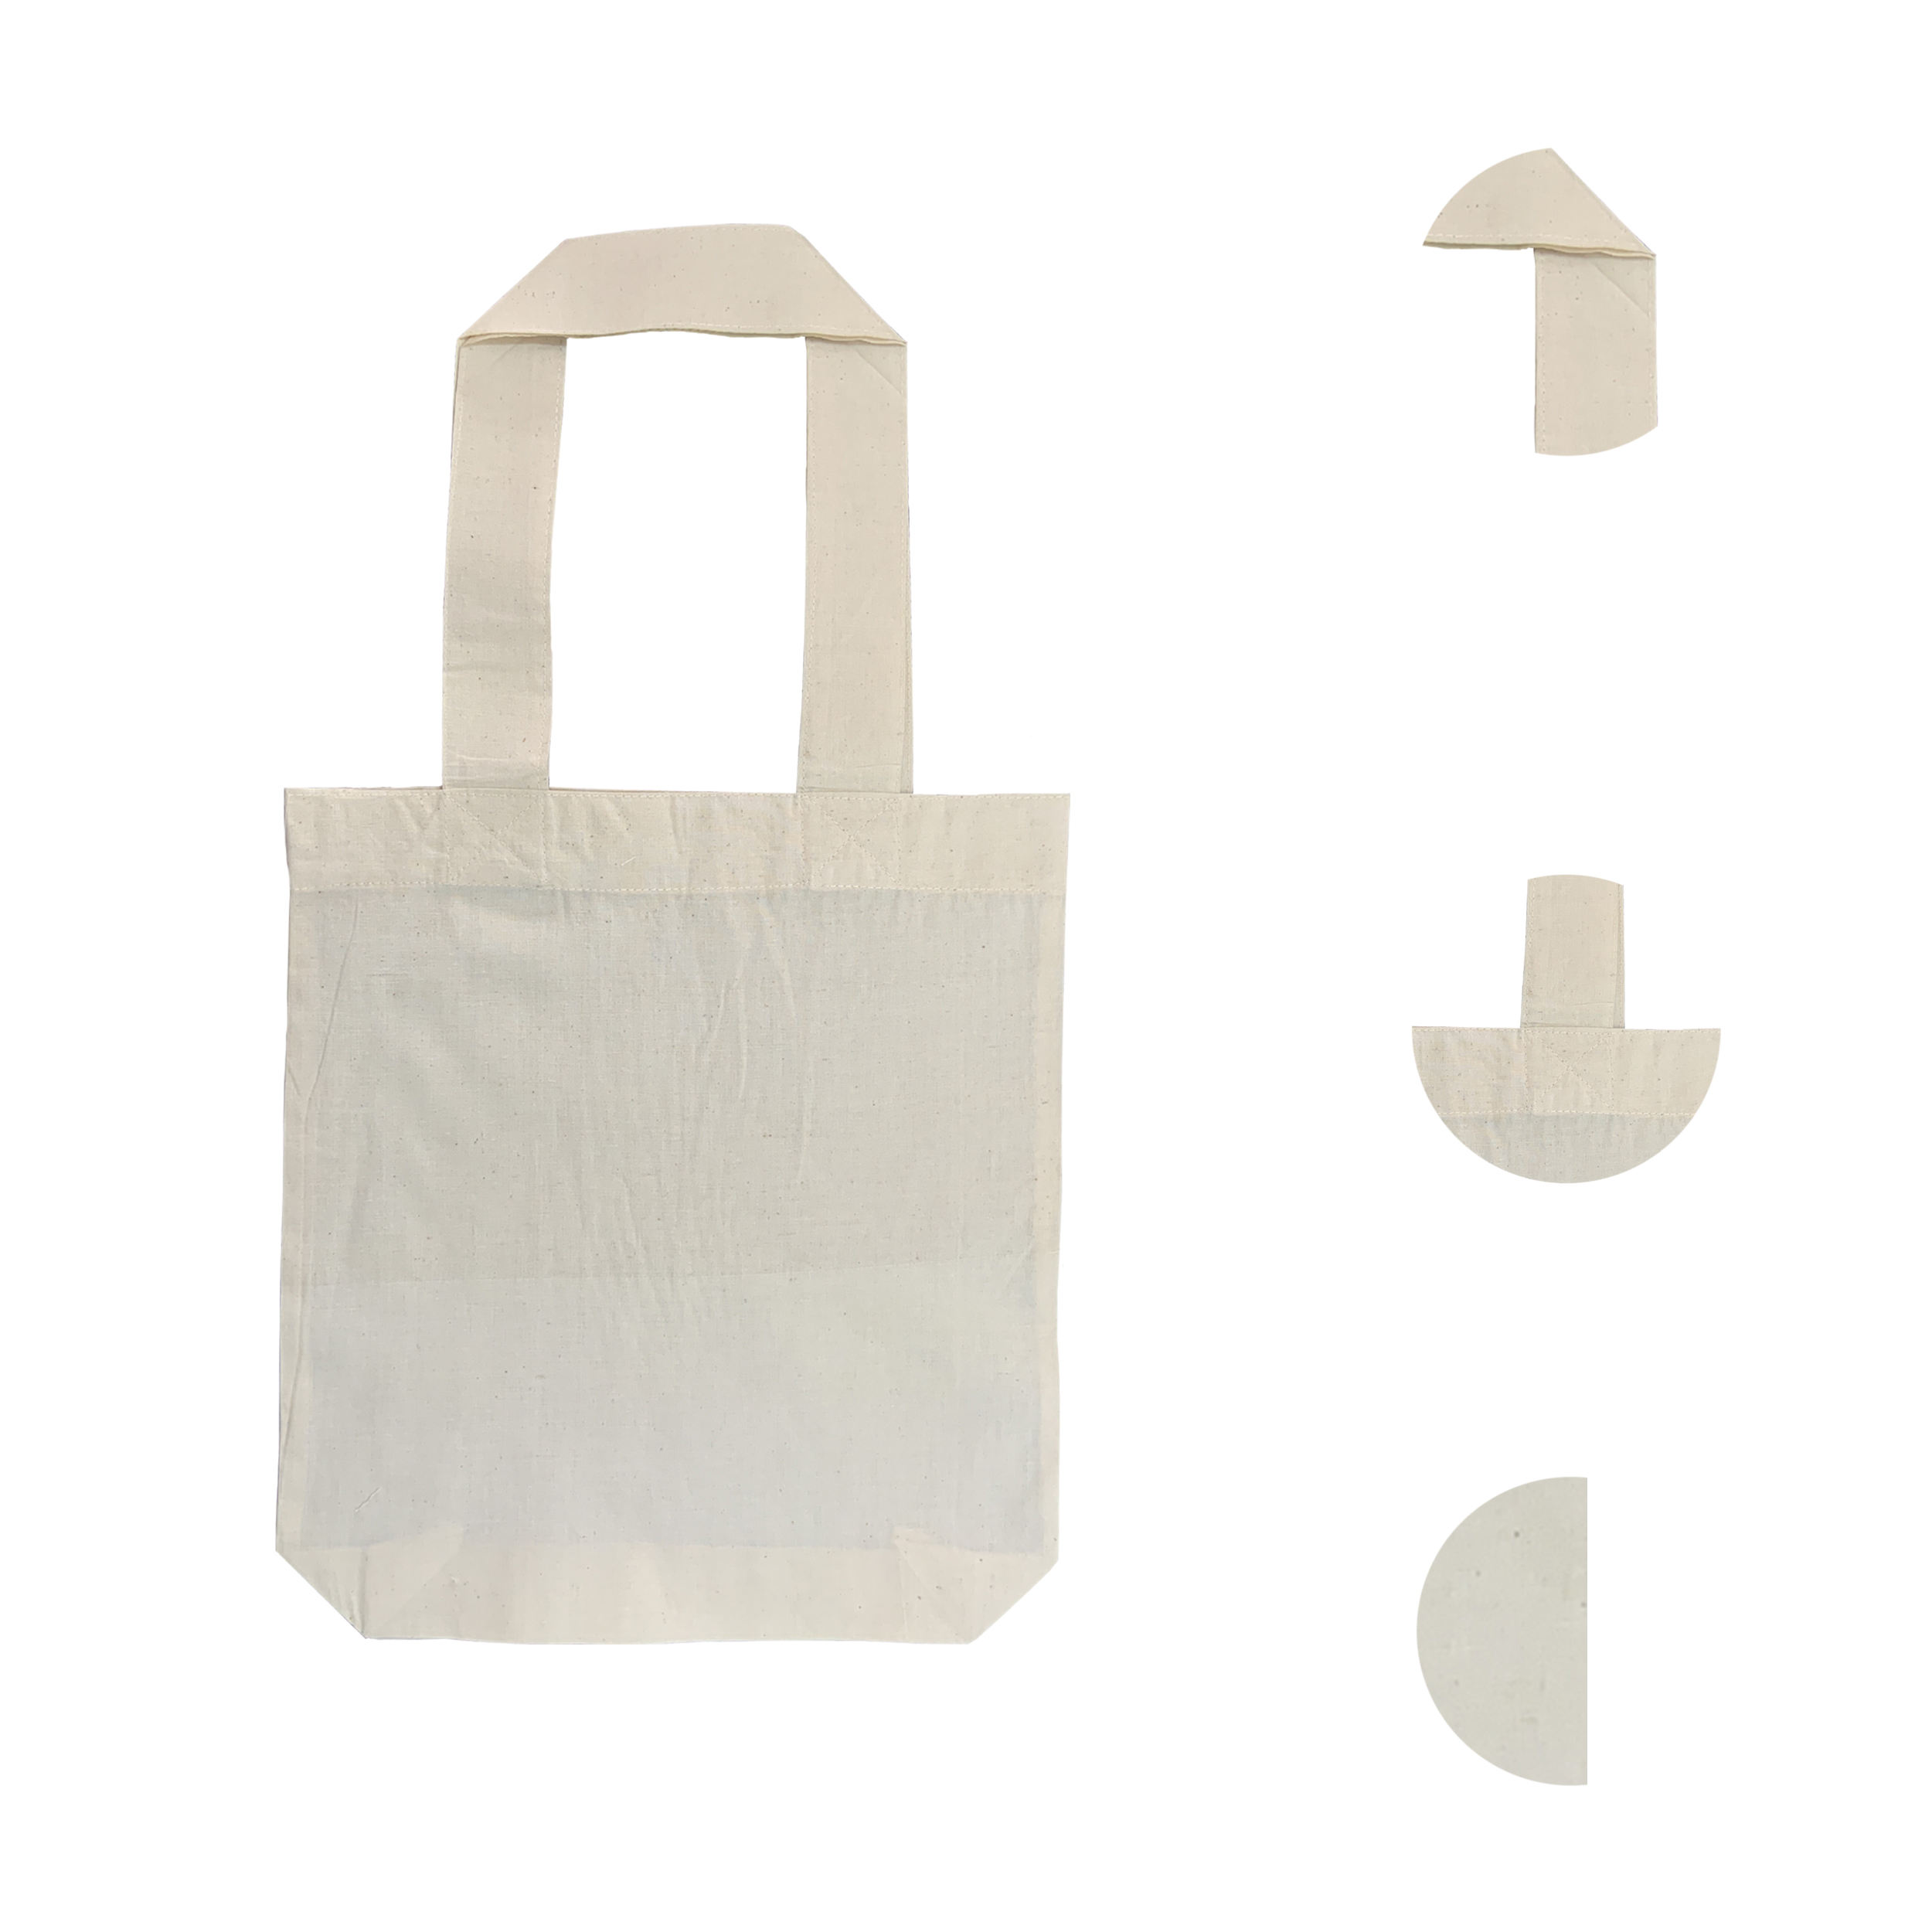 160gsm primitive calico cotton tote shopper bag very suitable for promotional and printing, supermarket shopper, conference bag